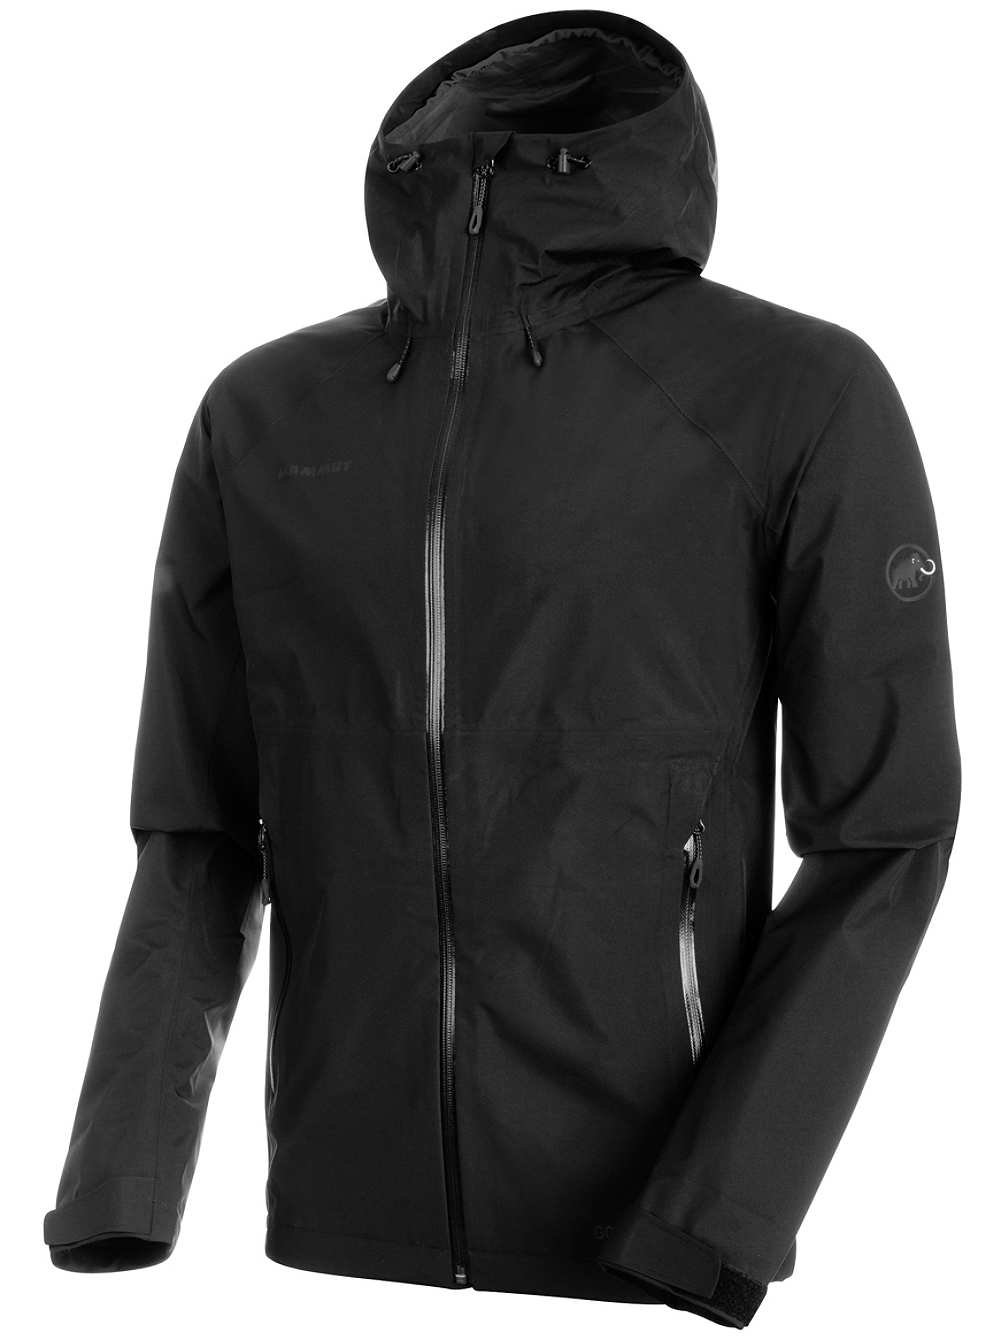 ◎マムート(MAMMUT) Convey Tour HS Hooded Jacket メンズ 1010-26030-0001 ジャケット B078JTGCTH XL|black black XL